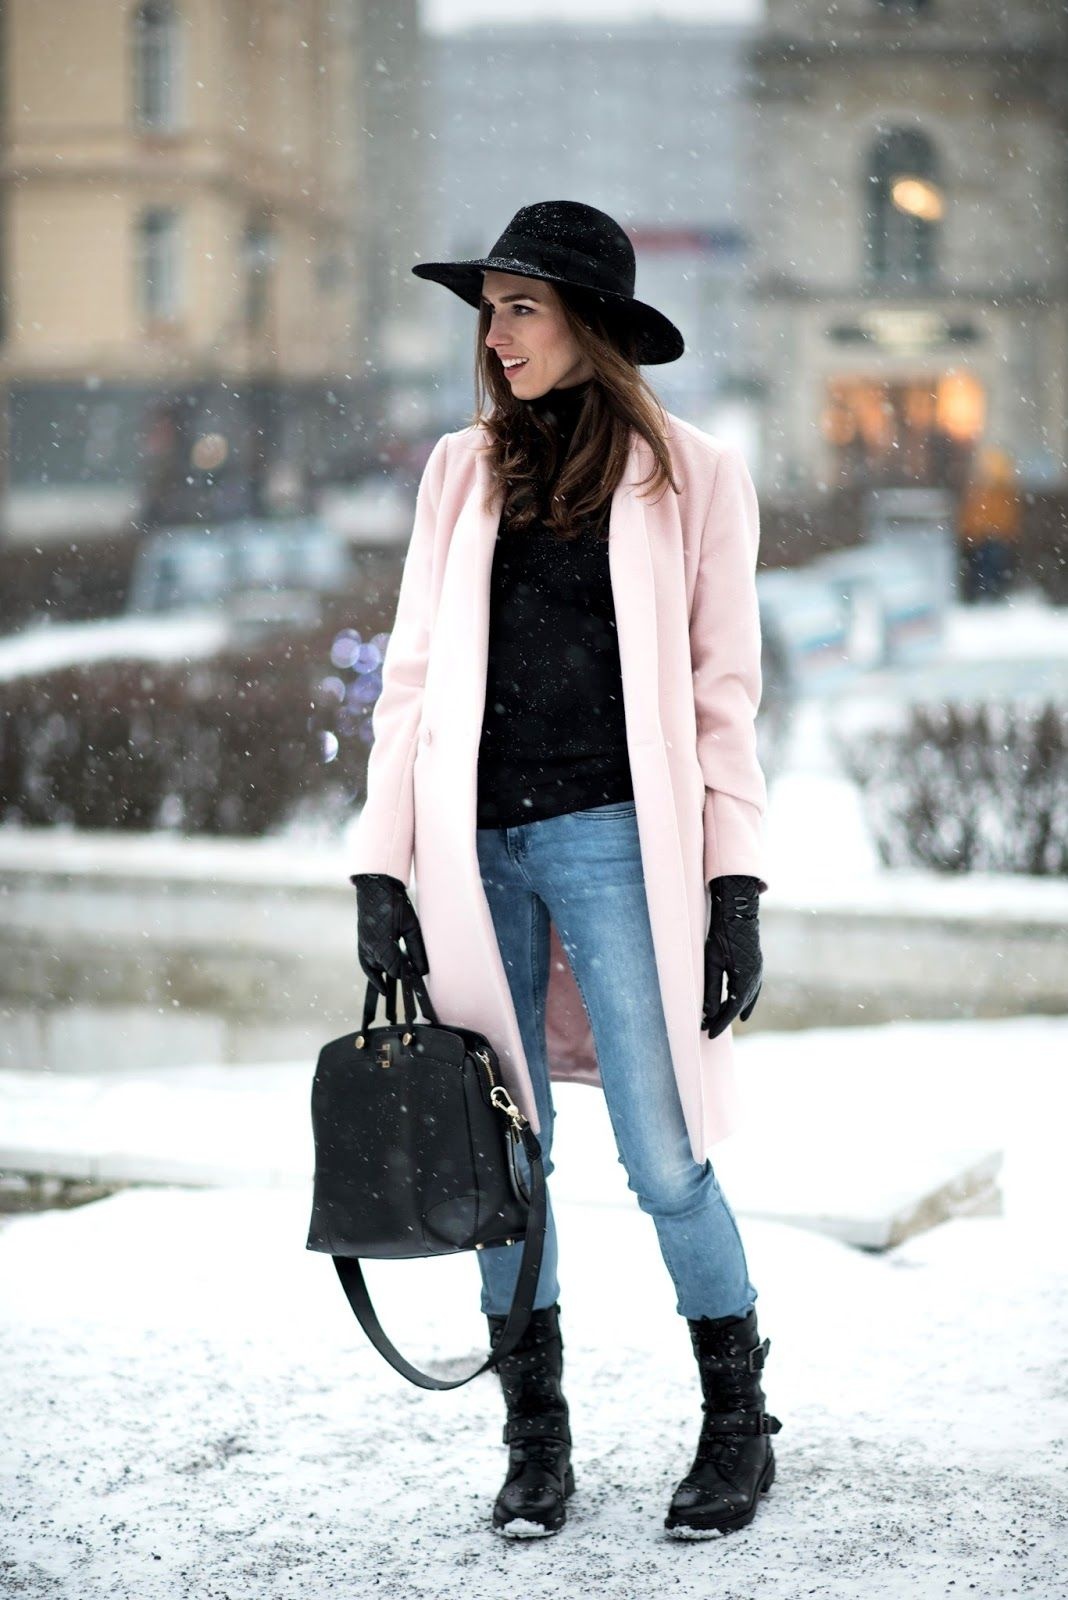 Winter Fedora Hat Outfit Winter Outfits Women Street Style Outfits Winter Classy Winter Outfits